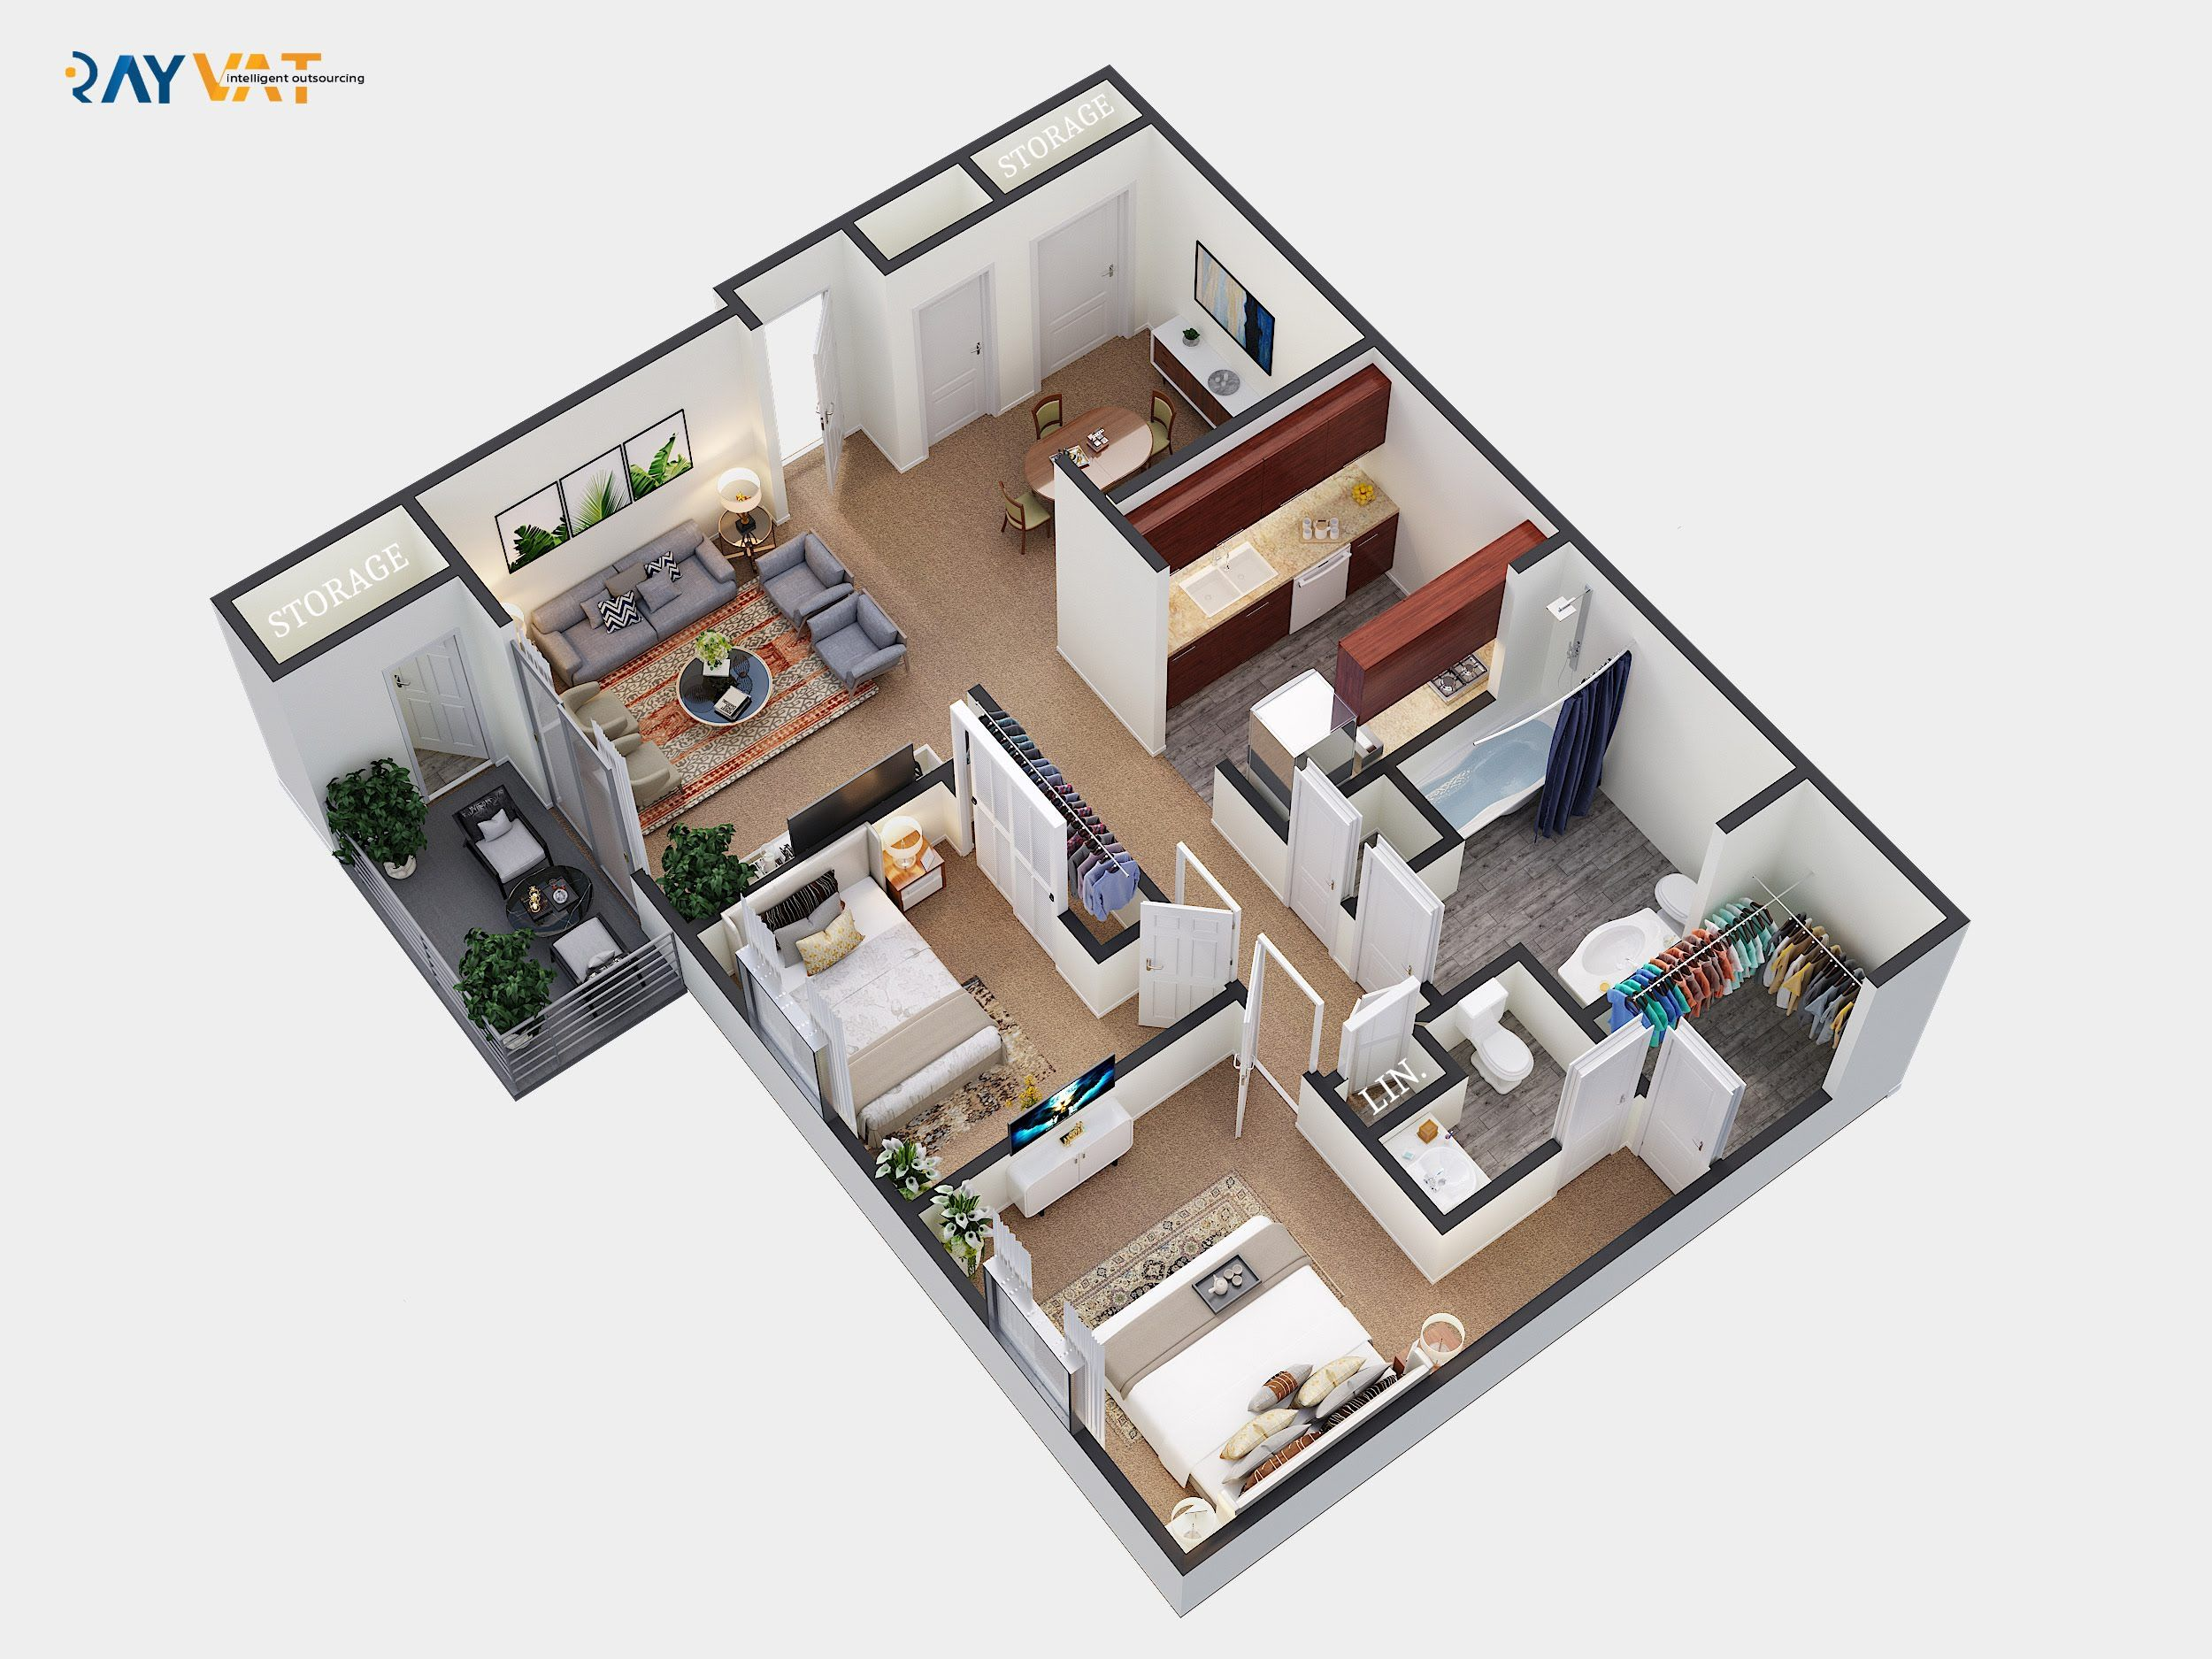 California House 3d Floor Plans Architectural Floor Plans Modern House Floor Plans California Homes